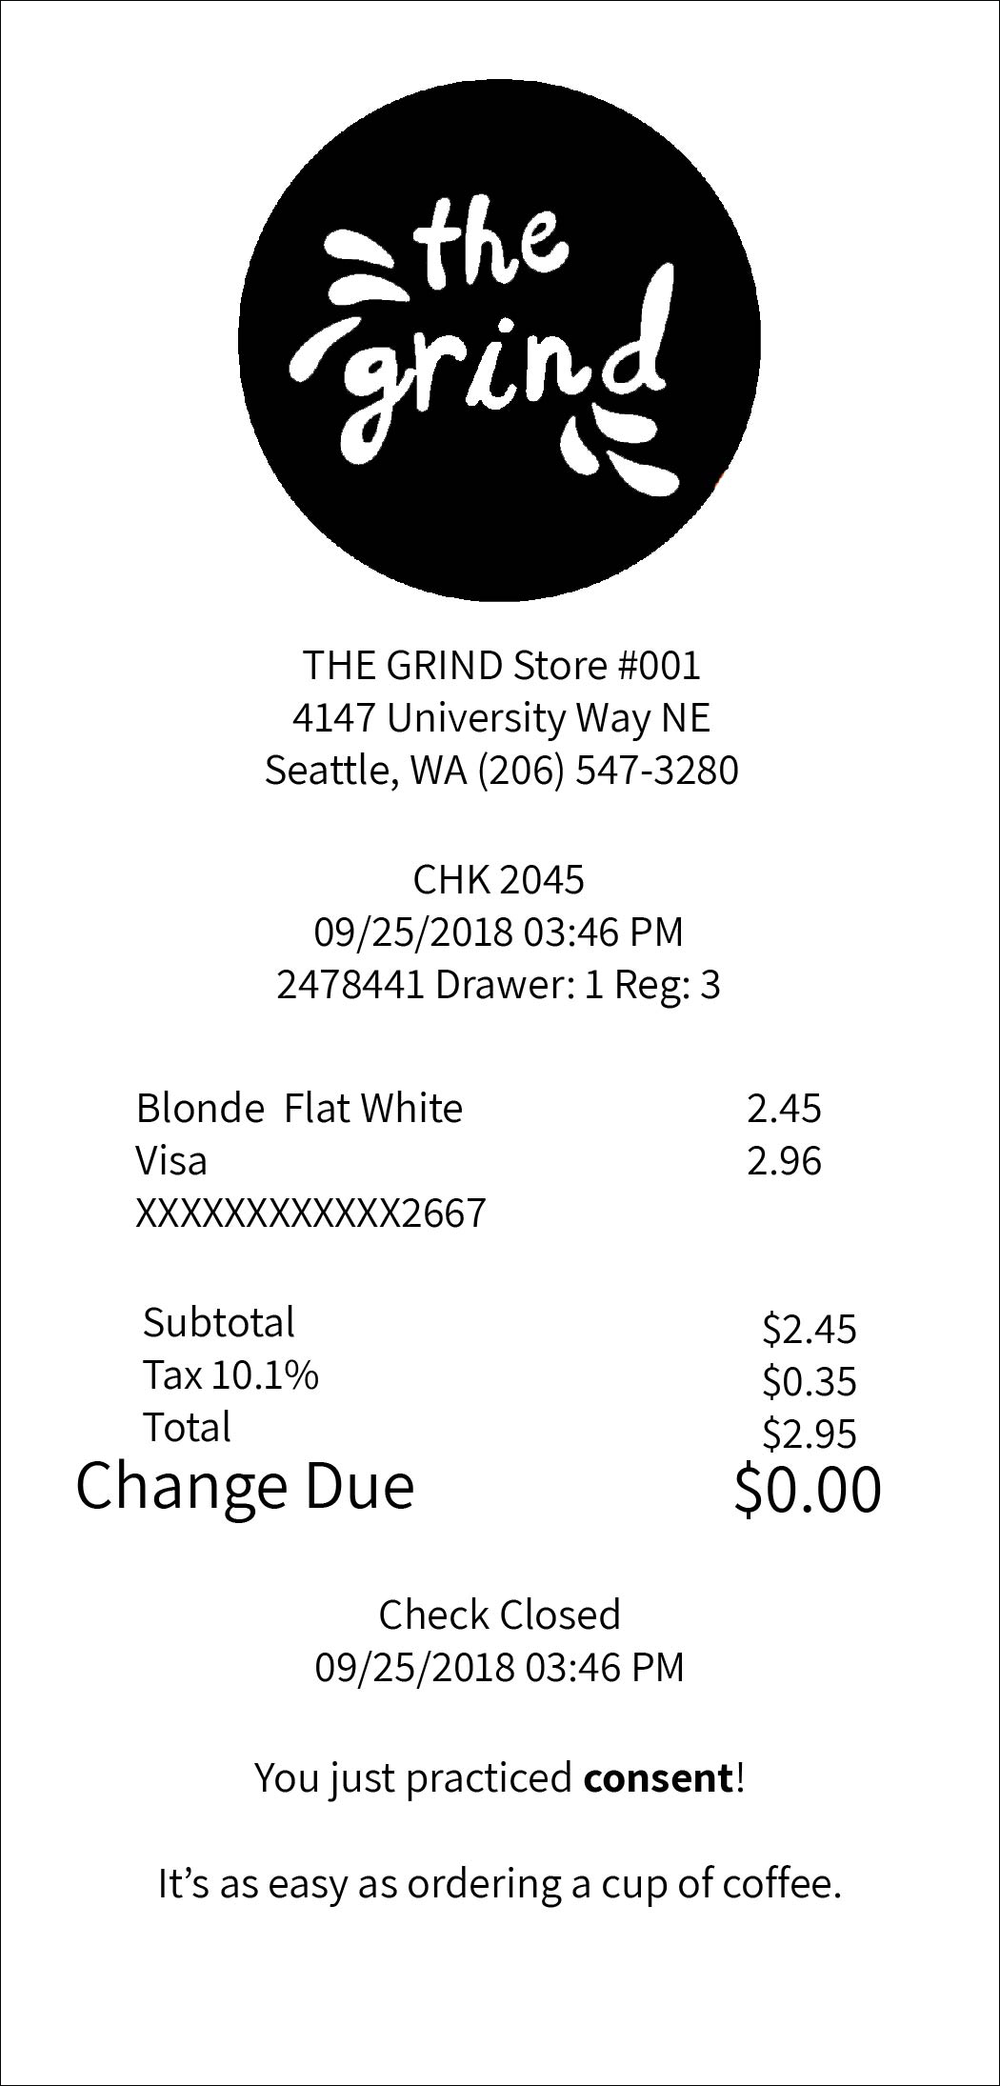 The Grind Reciept-fixedtypo-outlined.png